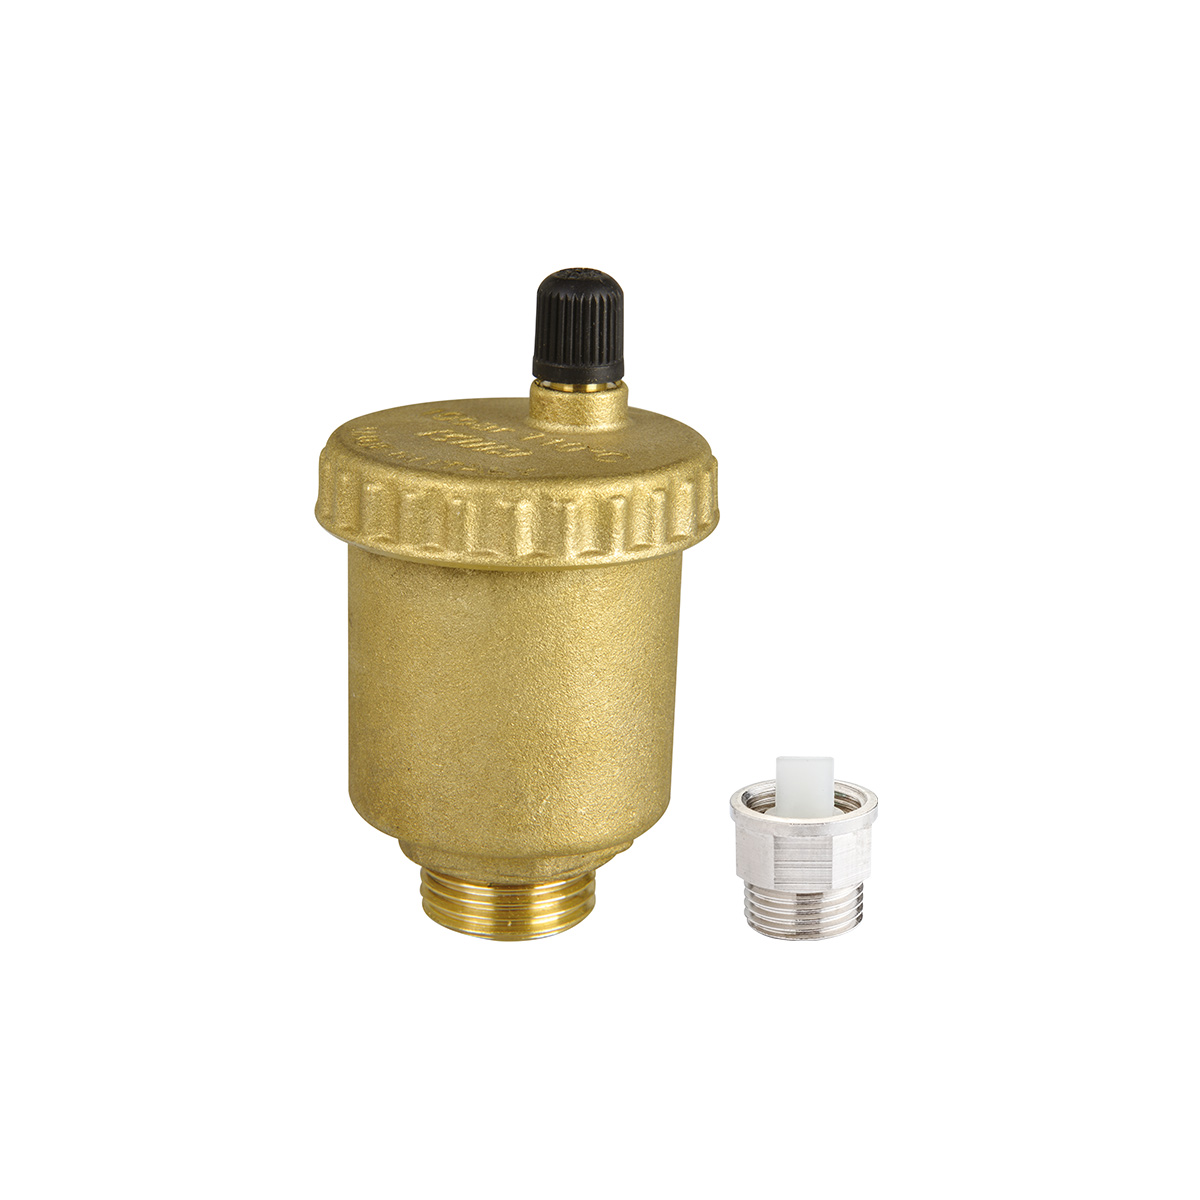 Automatic floating air vent with check valve.